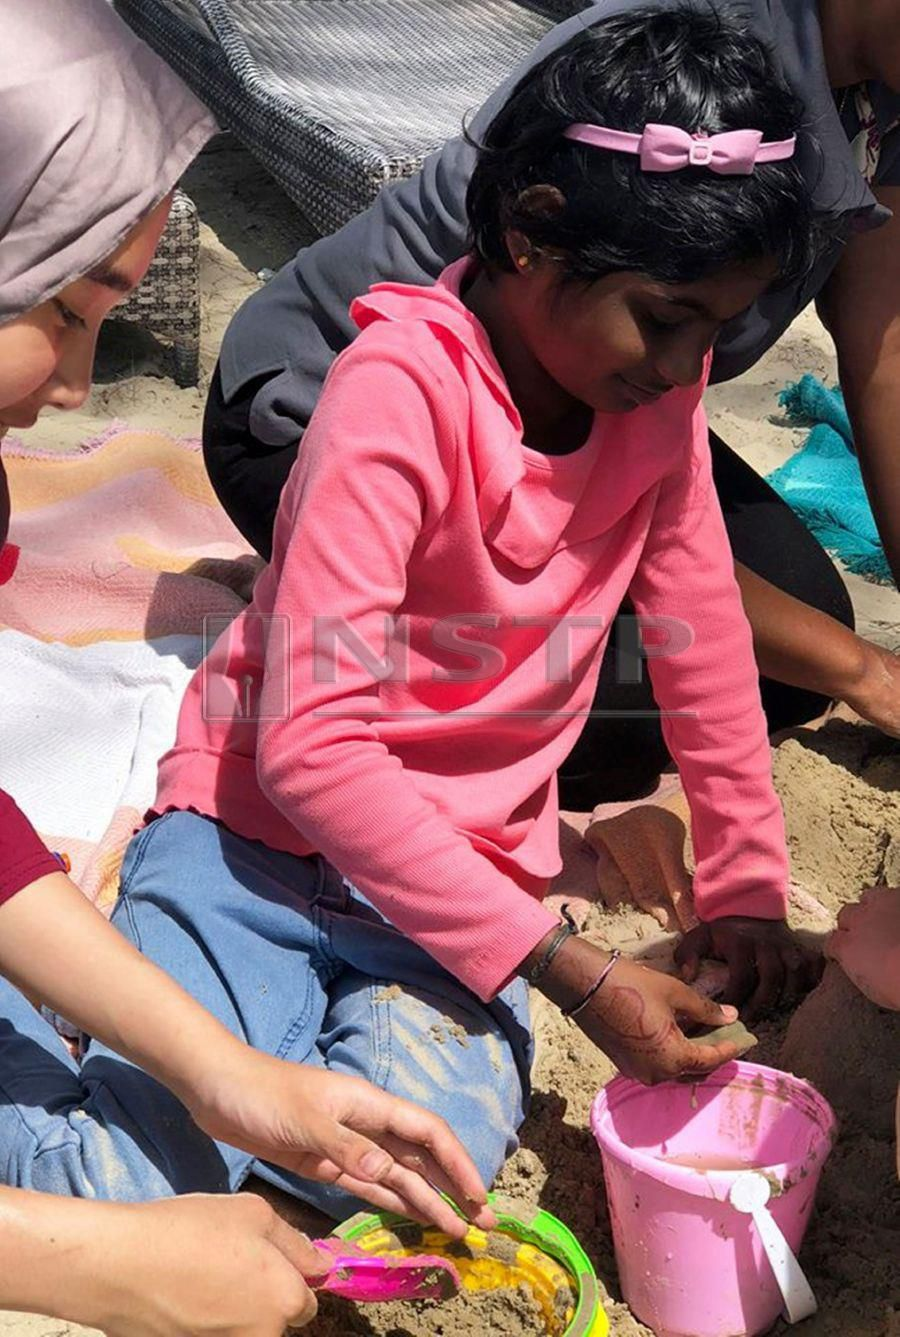 8 year-old Thanusha who's battling Right Distial Tibia Osteosarcoma with Lung Metastases wished to go to the beach and play with sand.